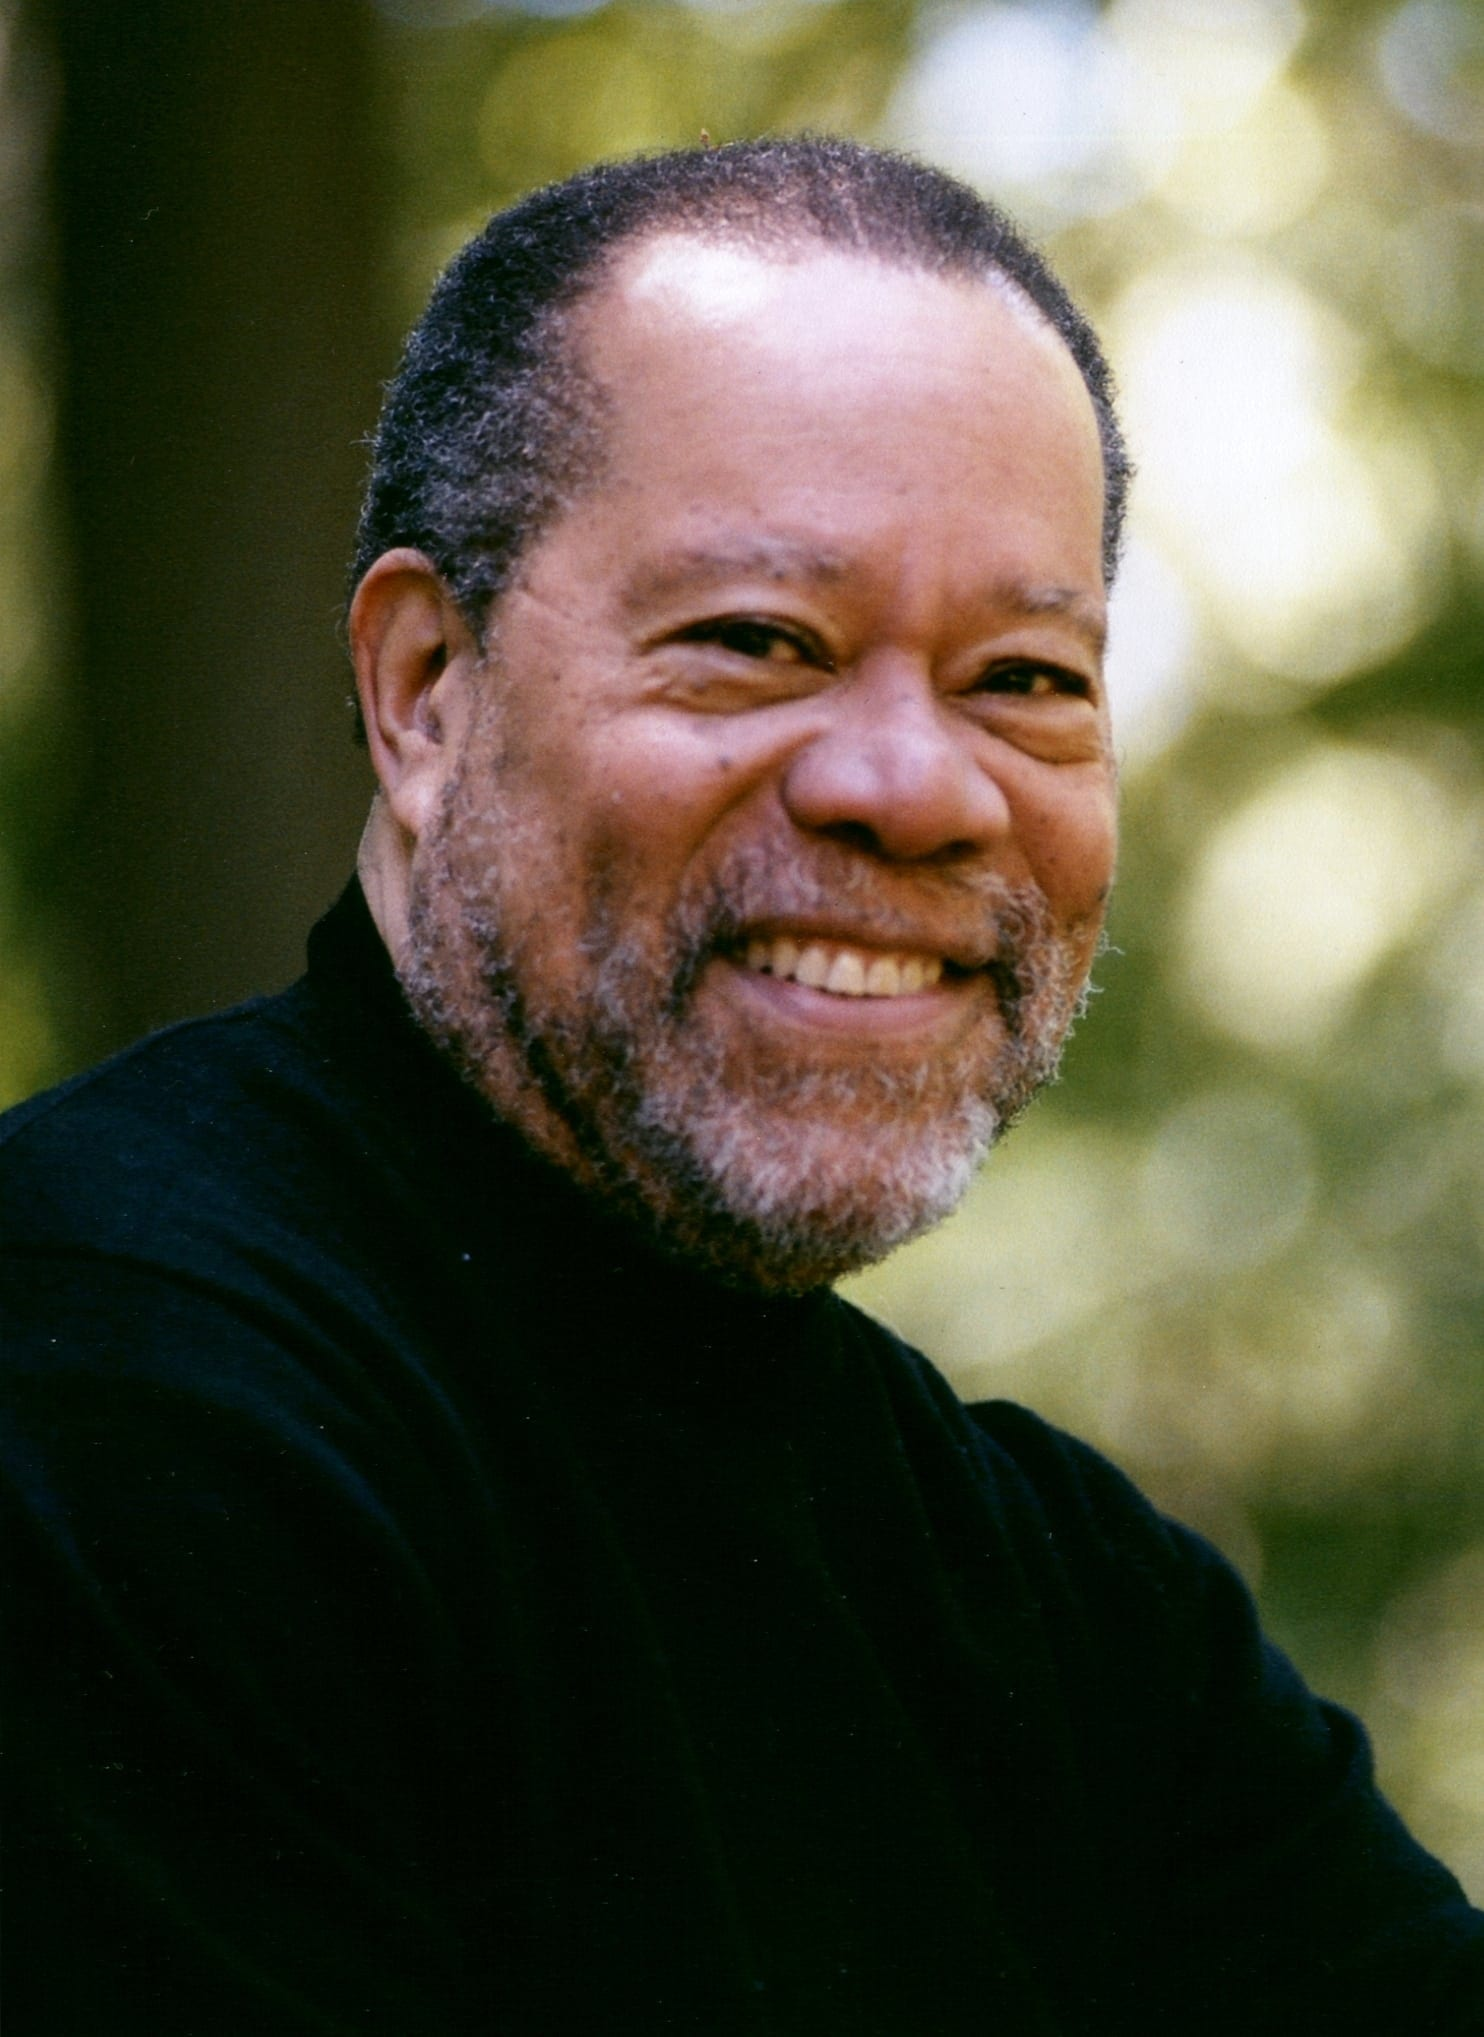 Jerry Pinkney (Photo by Myles C. Pinkney)